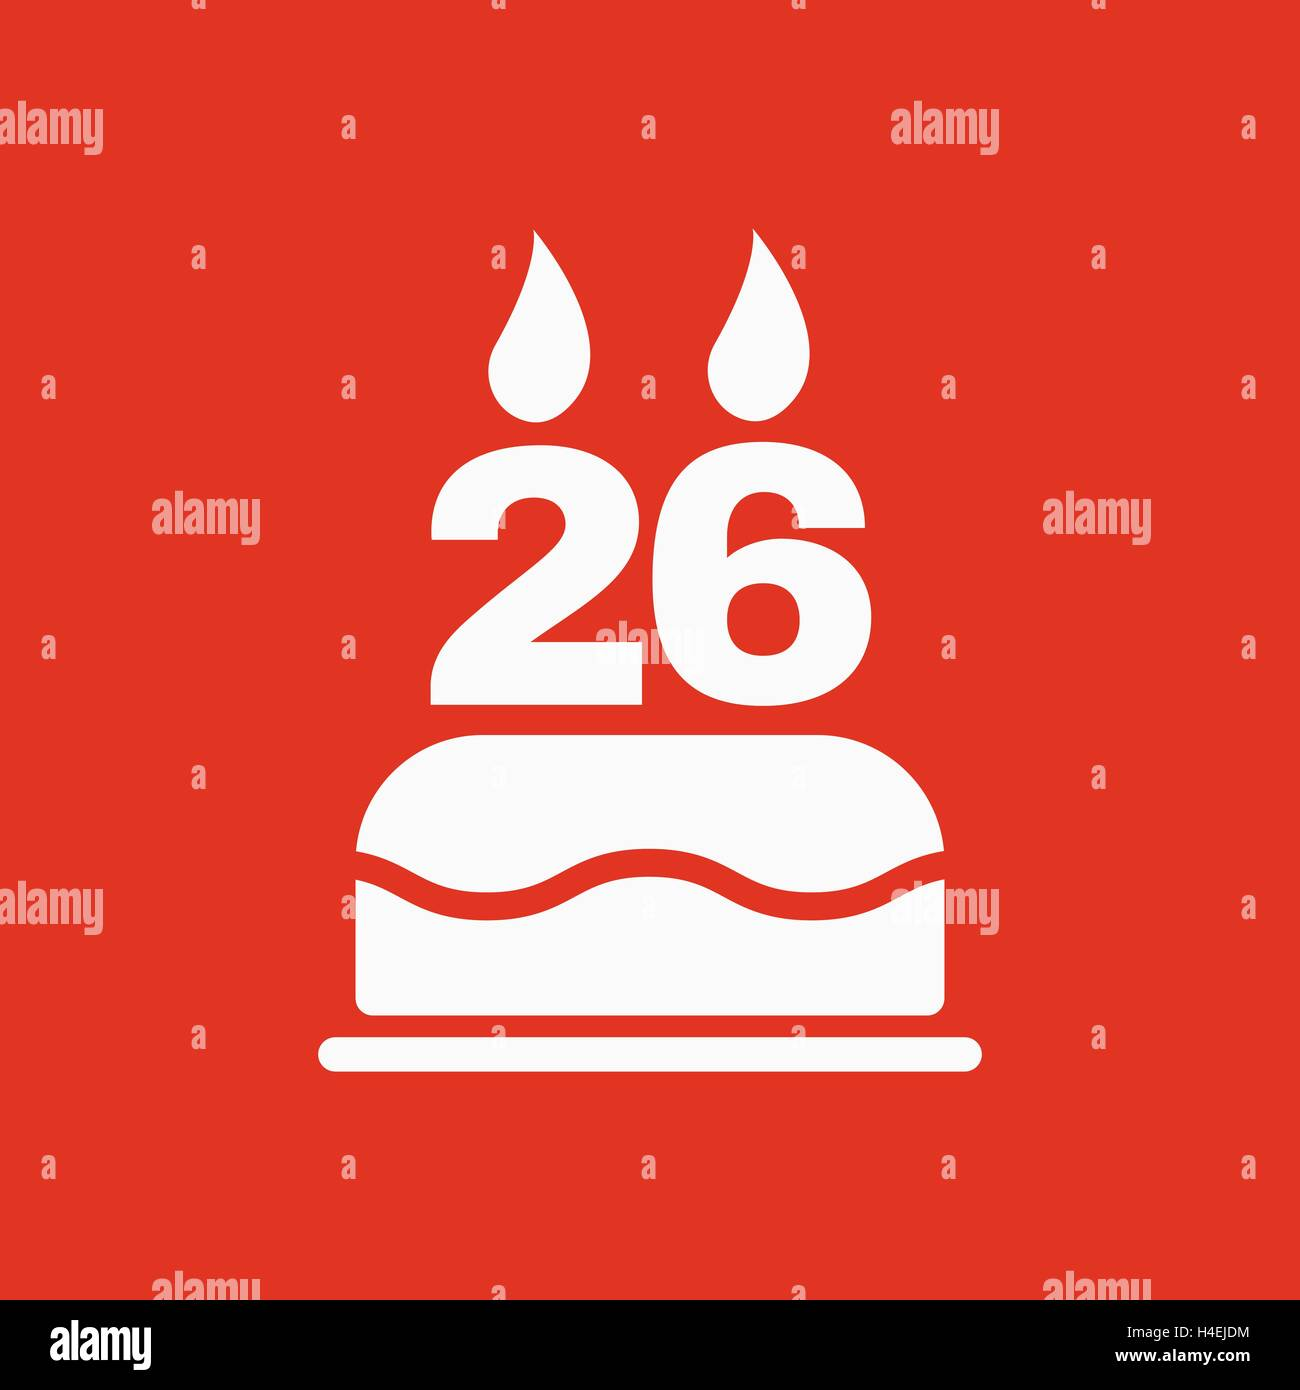 The Birthday Cake With Candles In The Form Of Number 26 Icon Stock